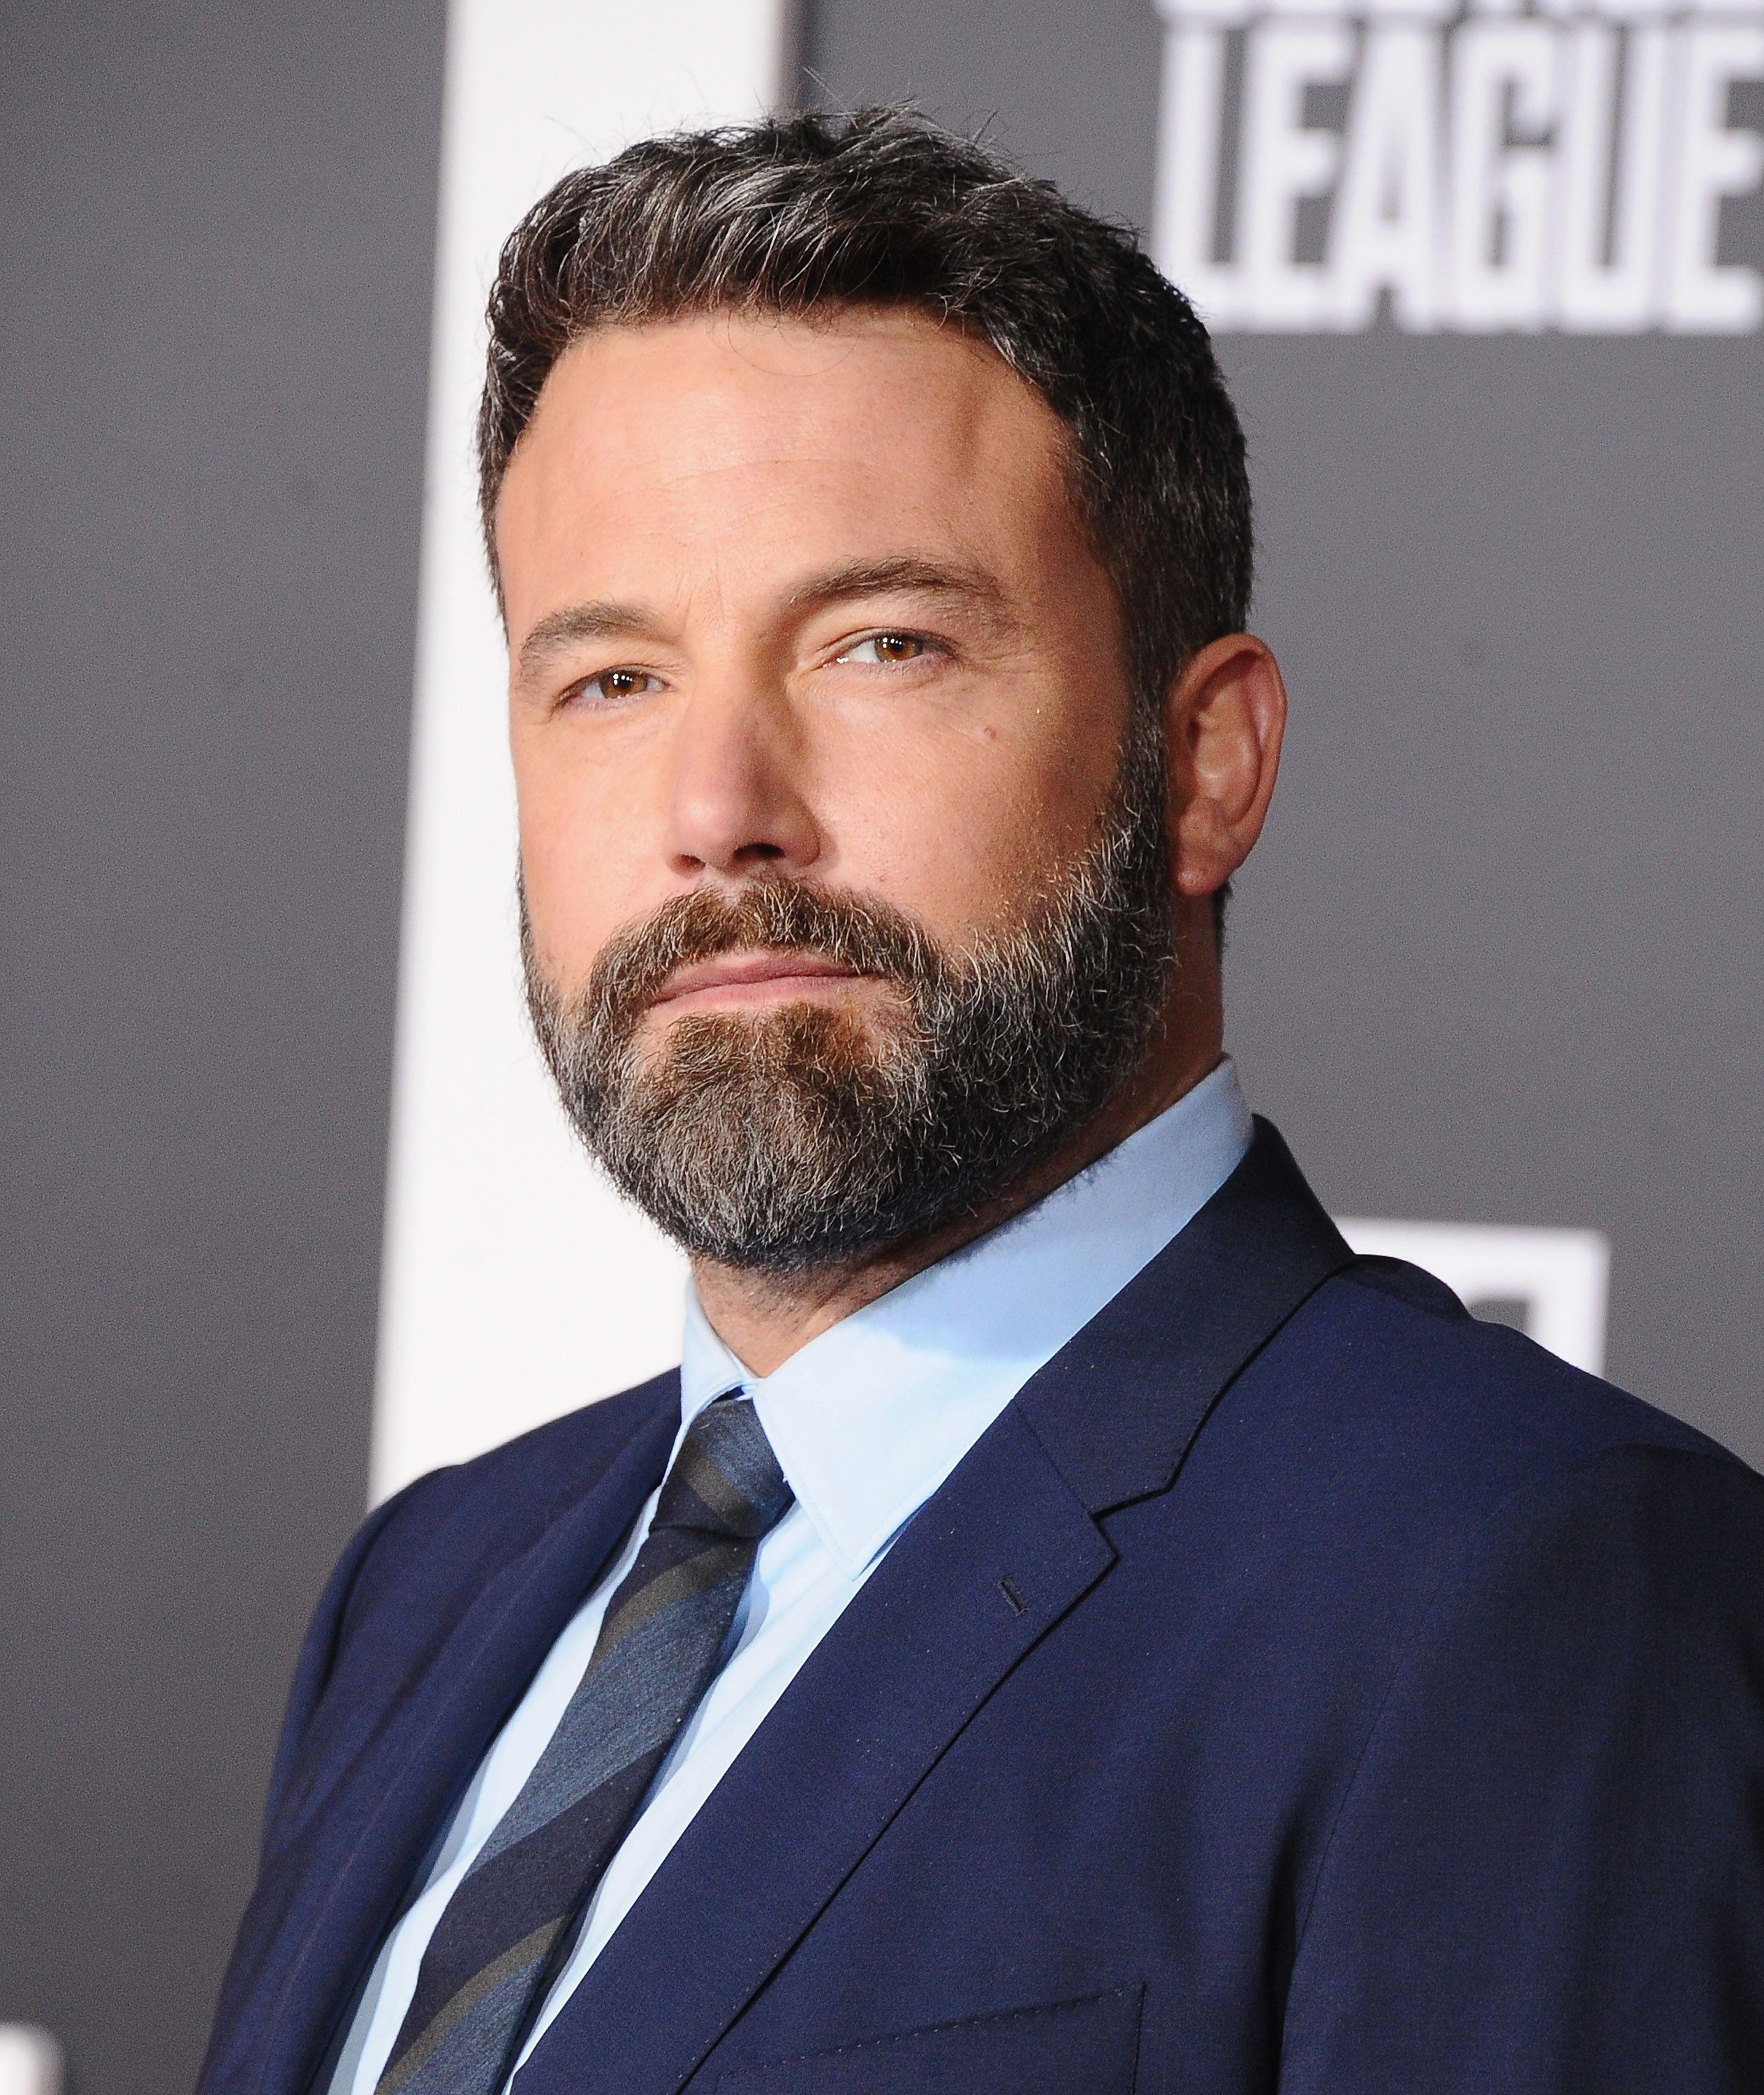 HOLLYWOOD, CA - NOVEMBER 13:  Actor Ben Affleck attends the Los Angeles Premiere of Warner Bros. Pictures' 'Justice League' at Dolby Theatre on November 13, 2017 in Hollywood, California.  (Photo by Jon Kopaloff/FilmMagic)